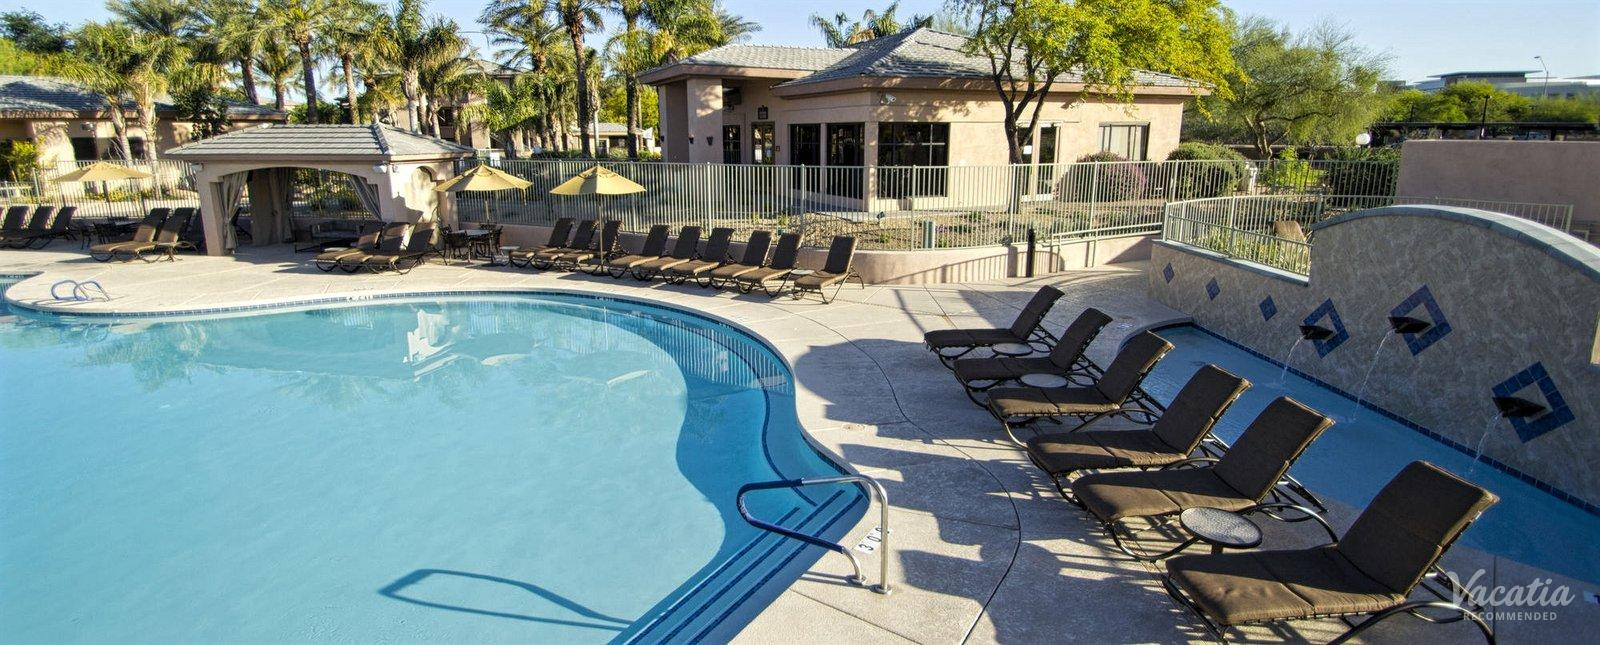 Scottsdale Links Resort Pool